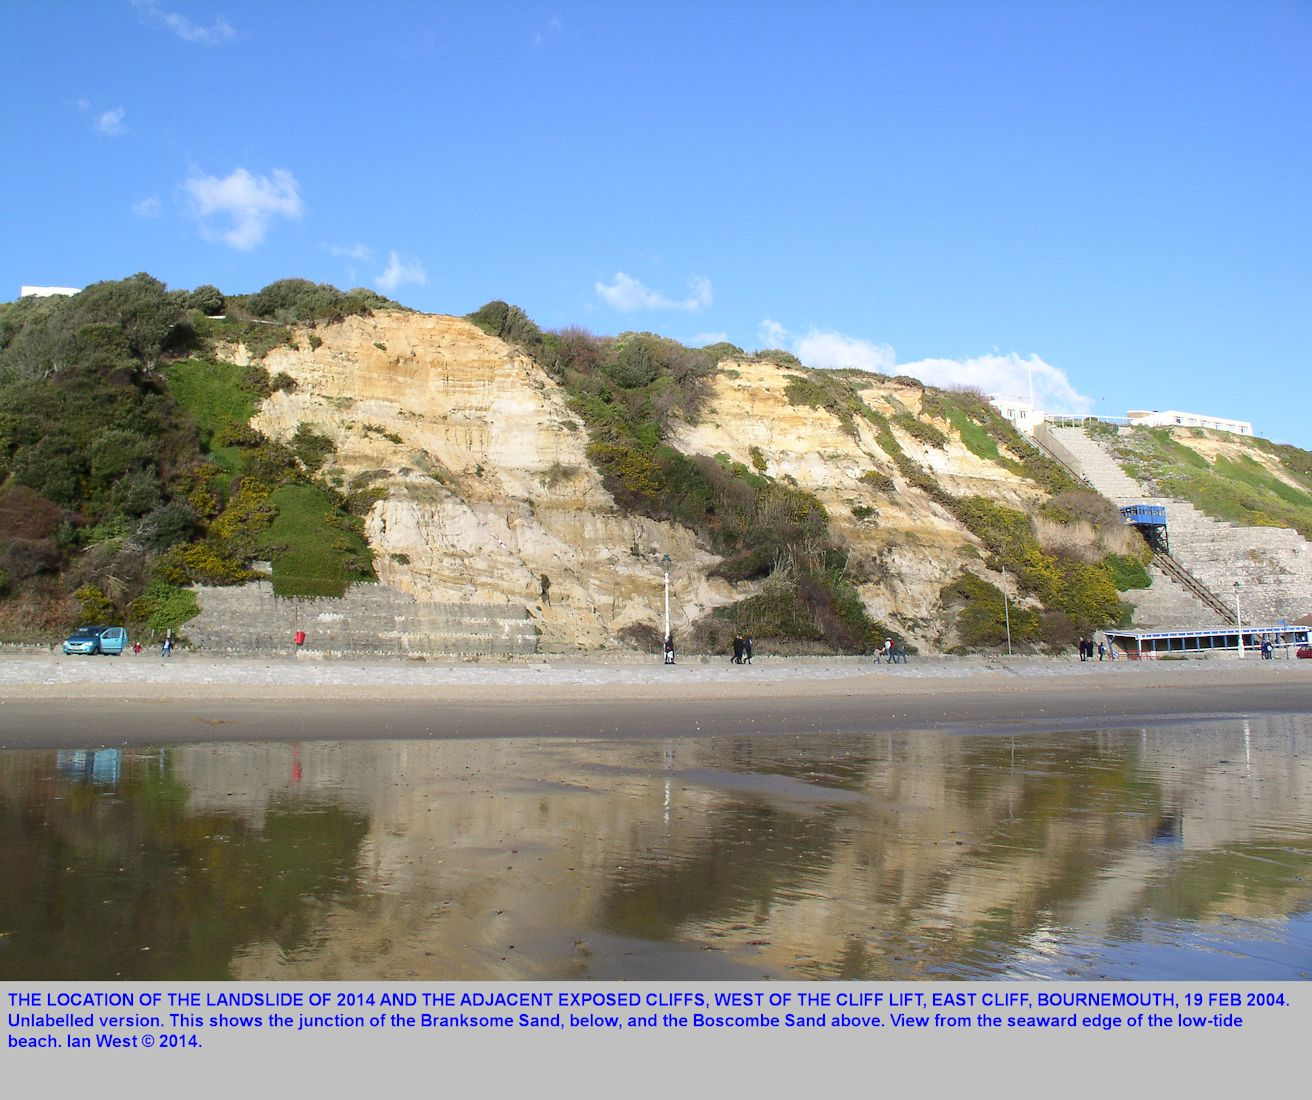 The cliff location, as seen from the low tide mark in 2004, of the landslide site of 2014, East Cliff, Bournemouth, Dorset